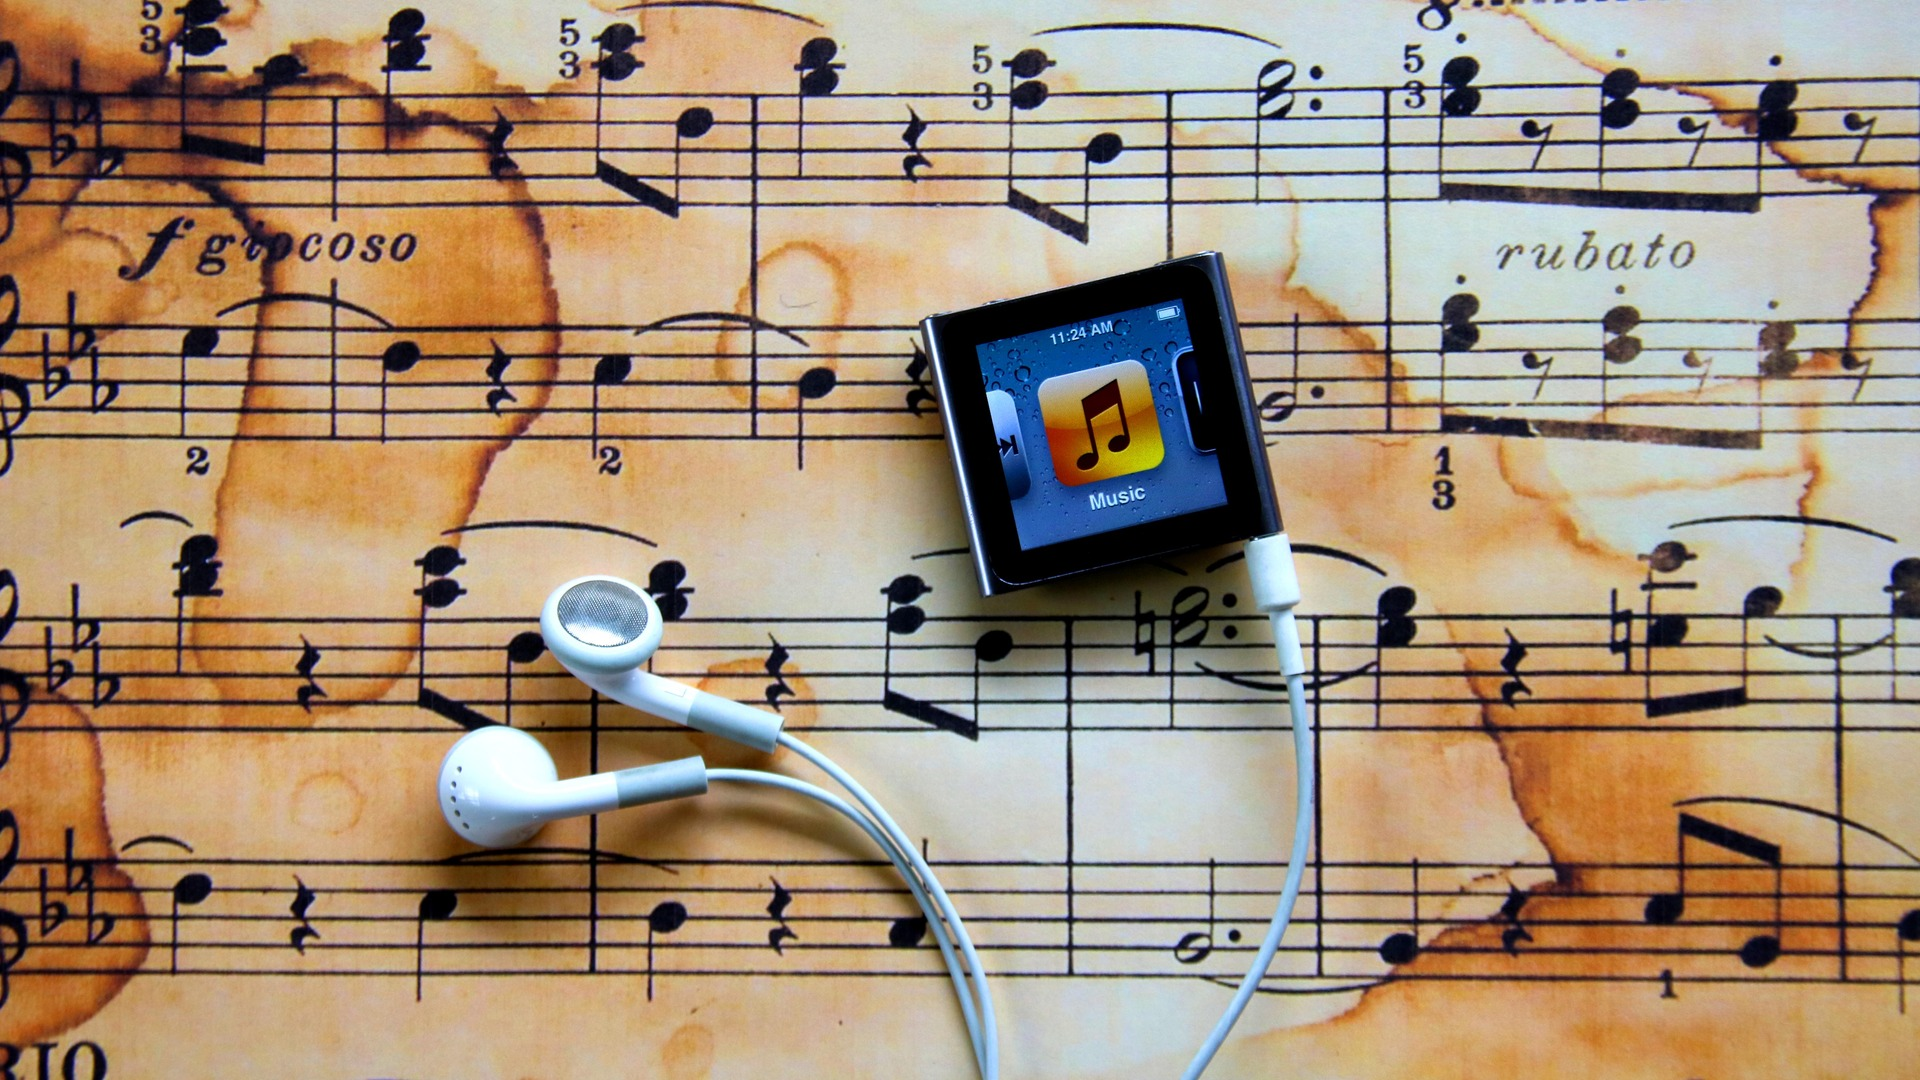 Ipod Music Apple Inc 1920x1080